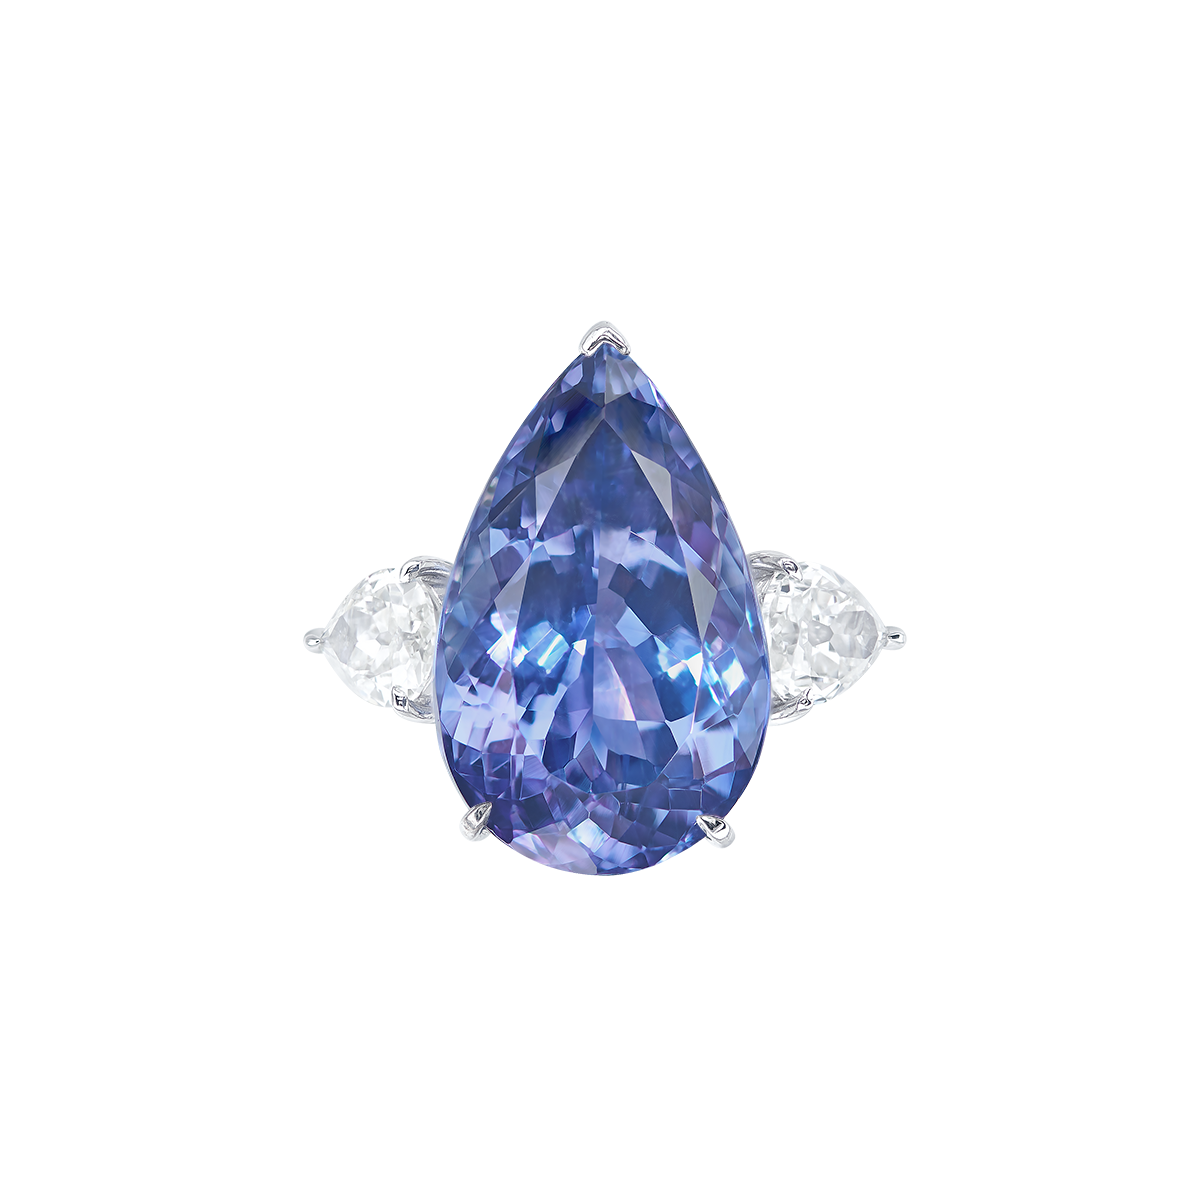 12.21克拉 丹泉石鑽戒